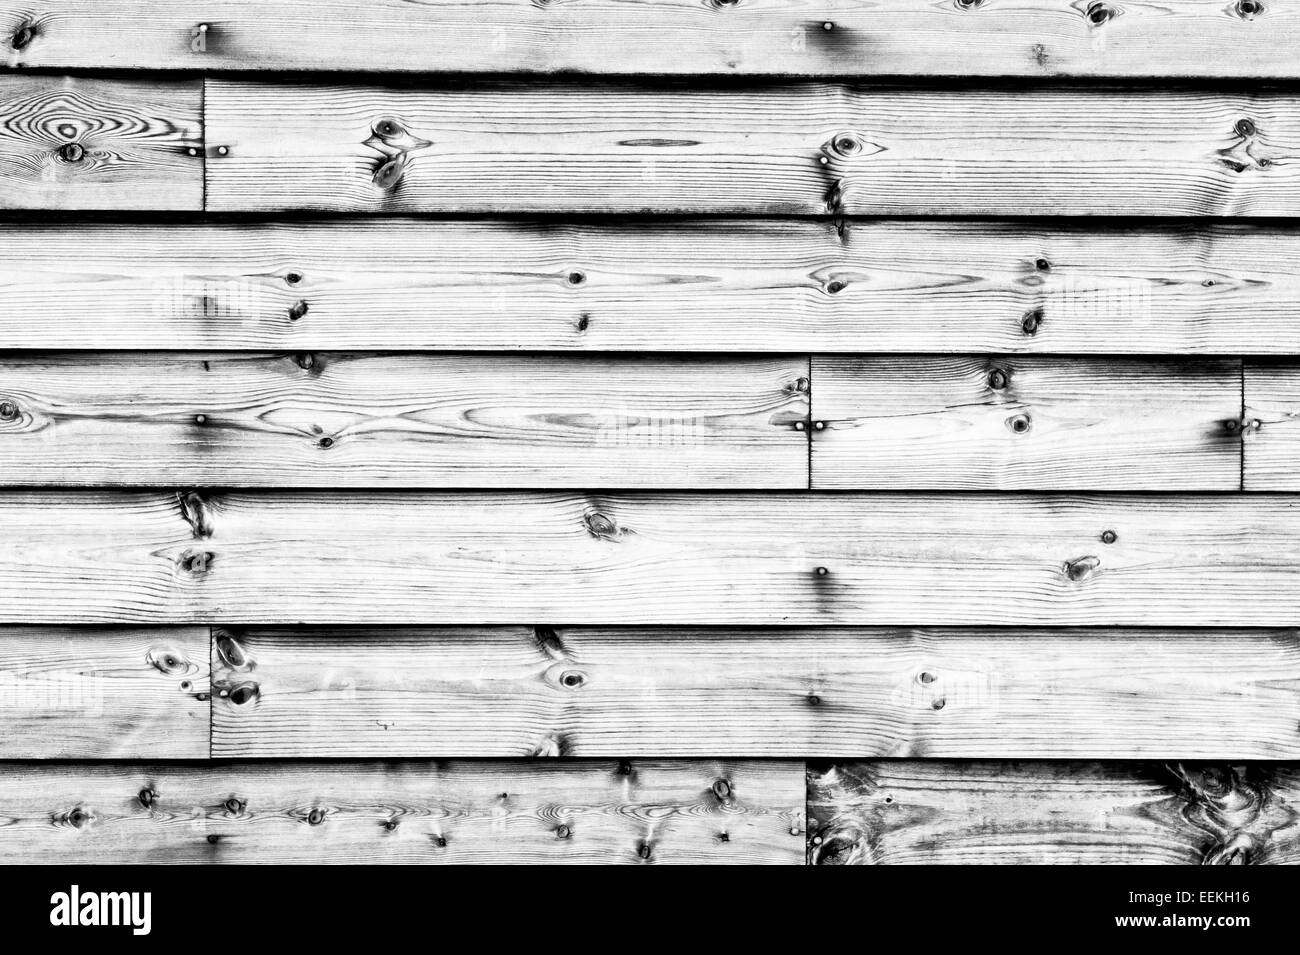 Wooden planks on a shed wall as a background - Stock Image